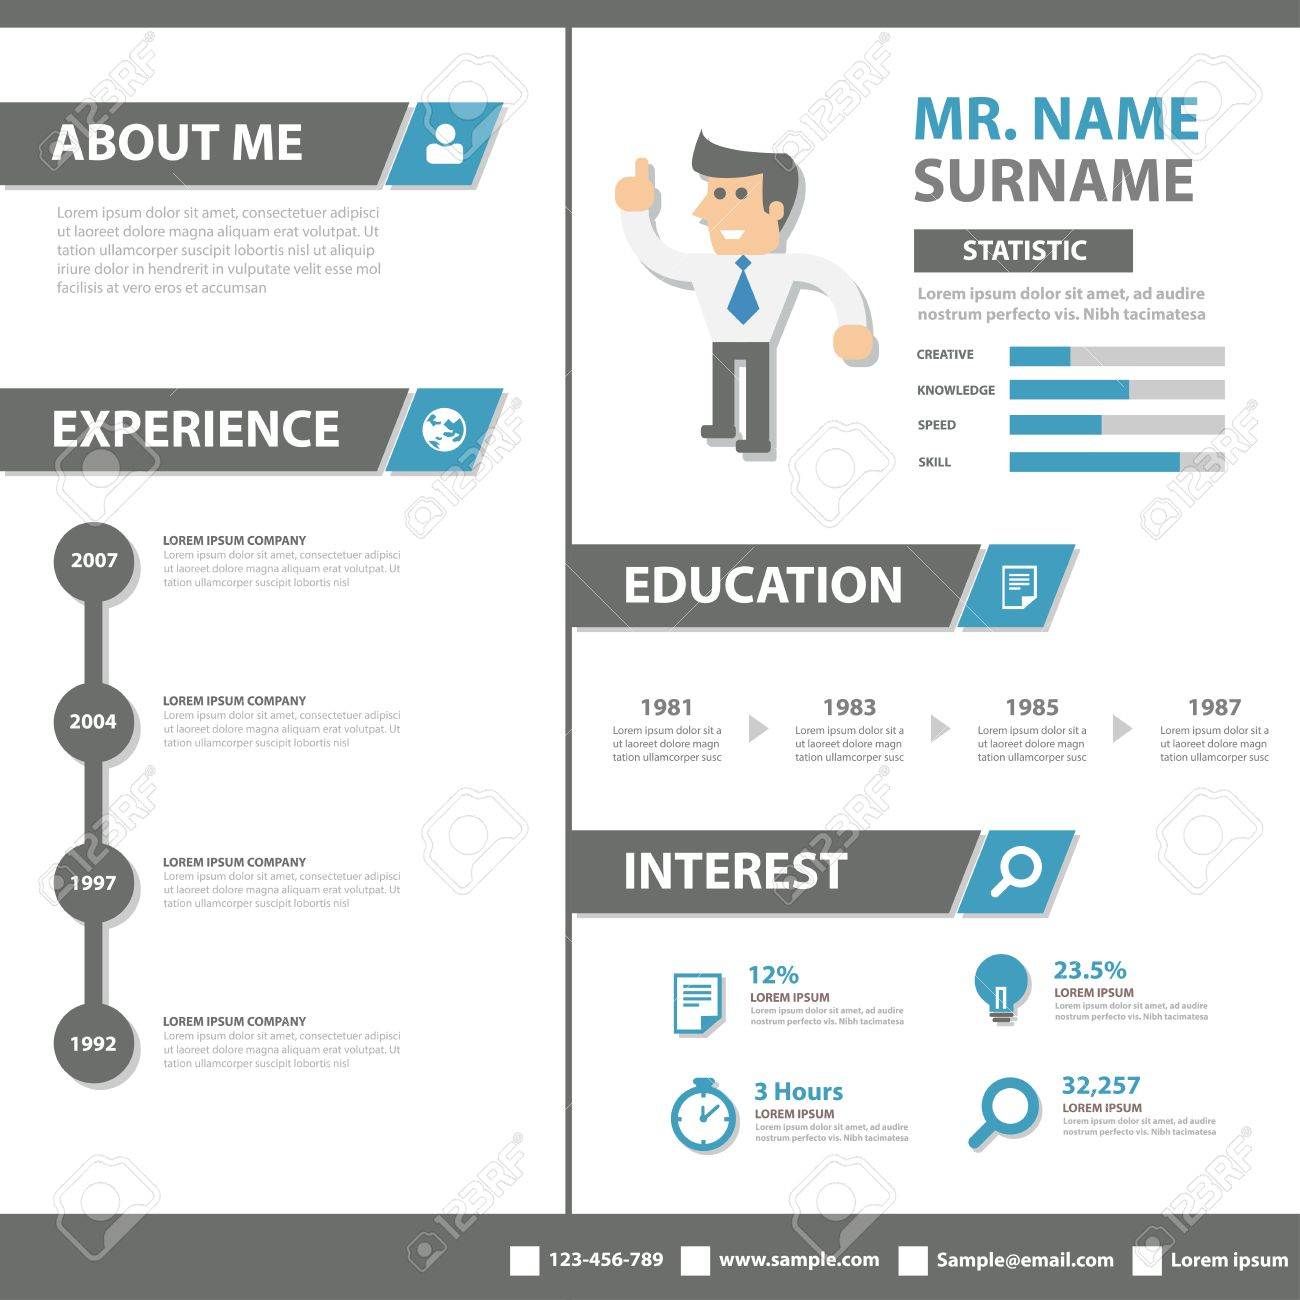 smart creative resume business profile cv vitae template layout flat design for job application advertising marketing